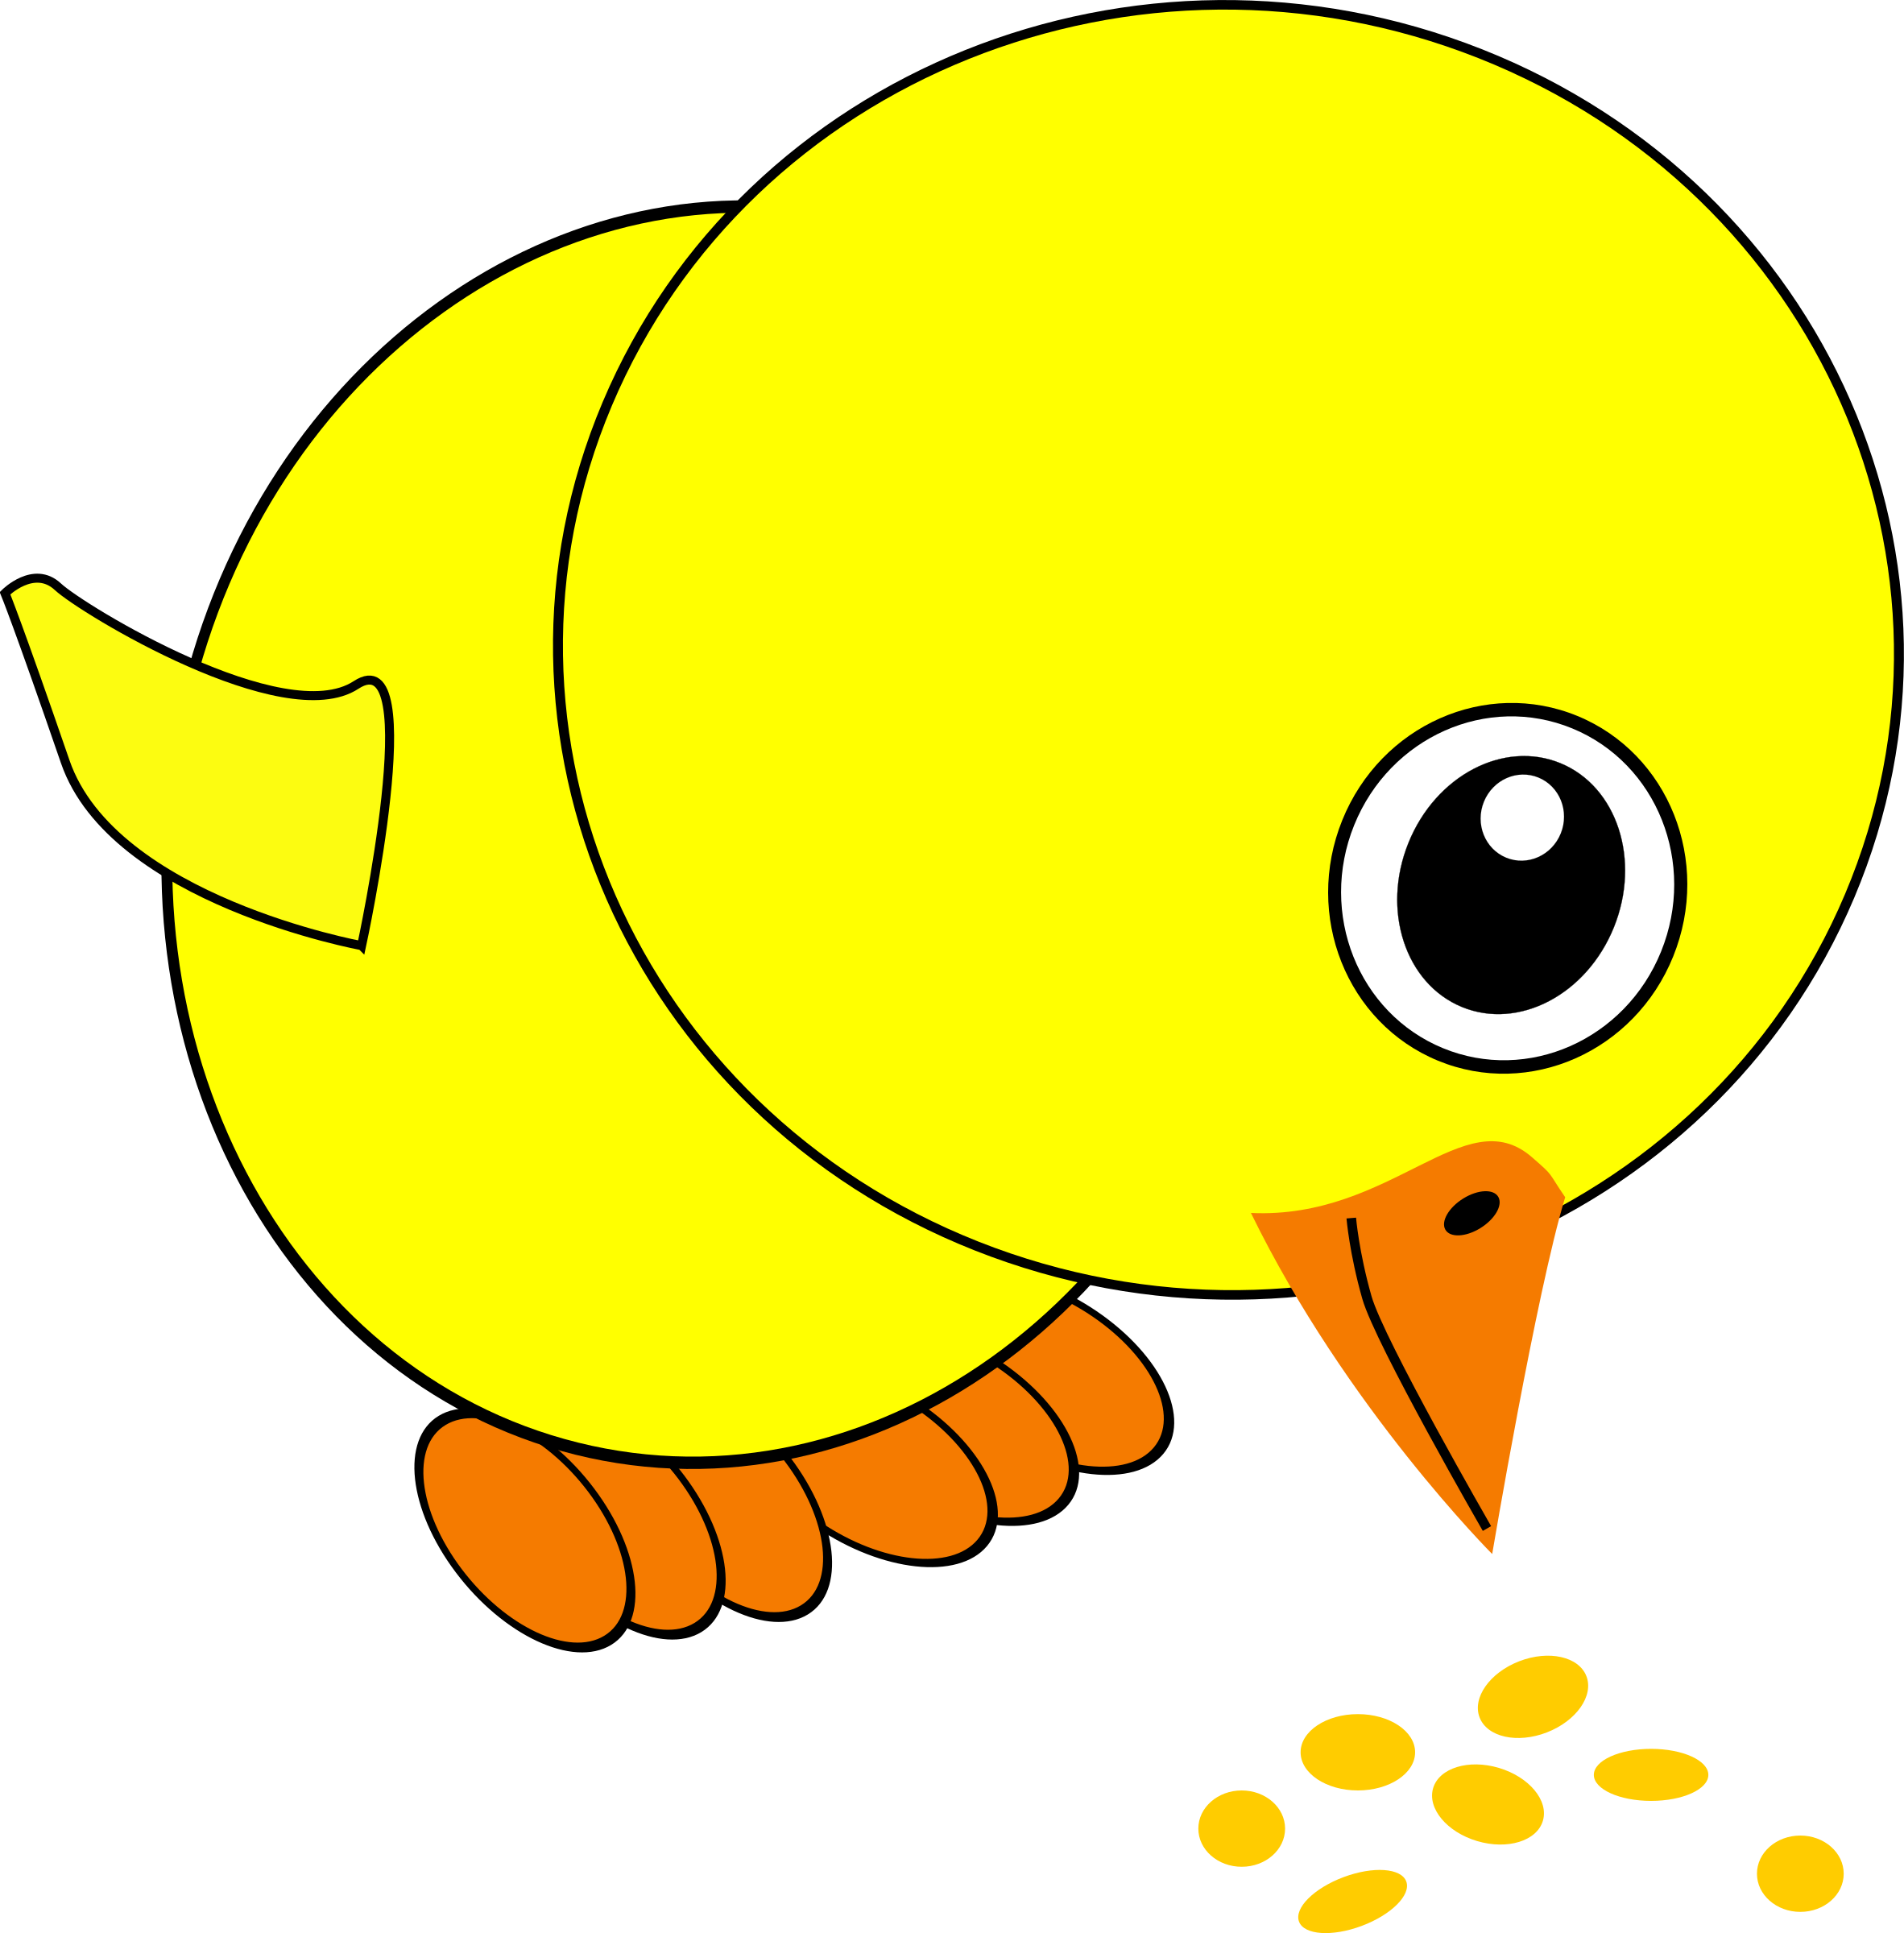 Big bird face png. Quail clipart at getdrawings